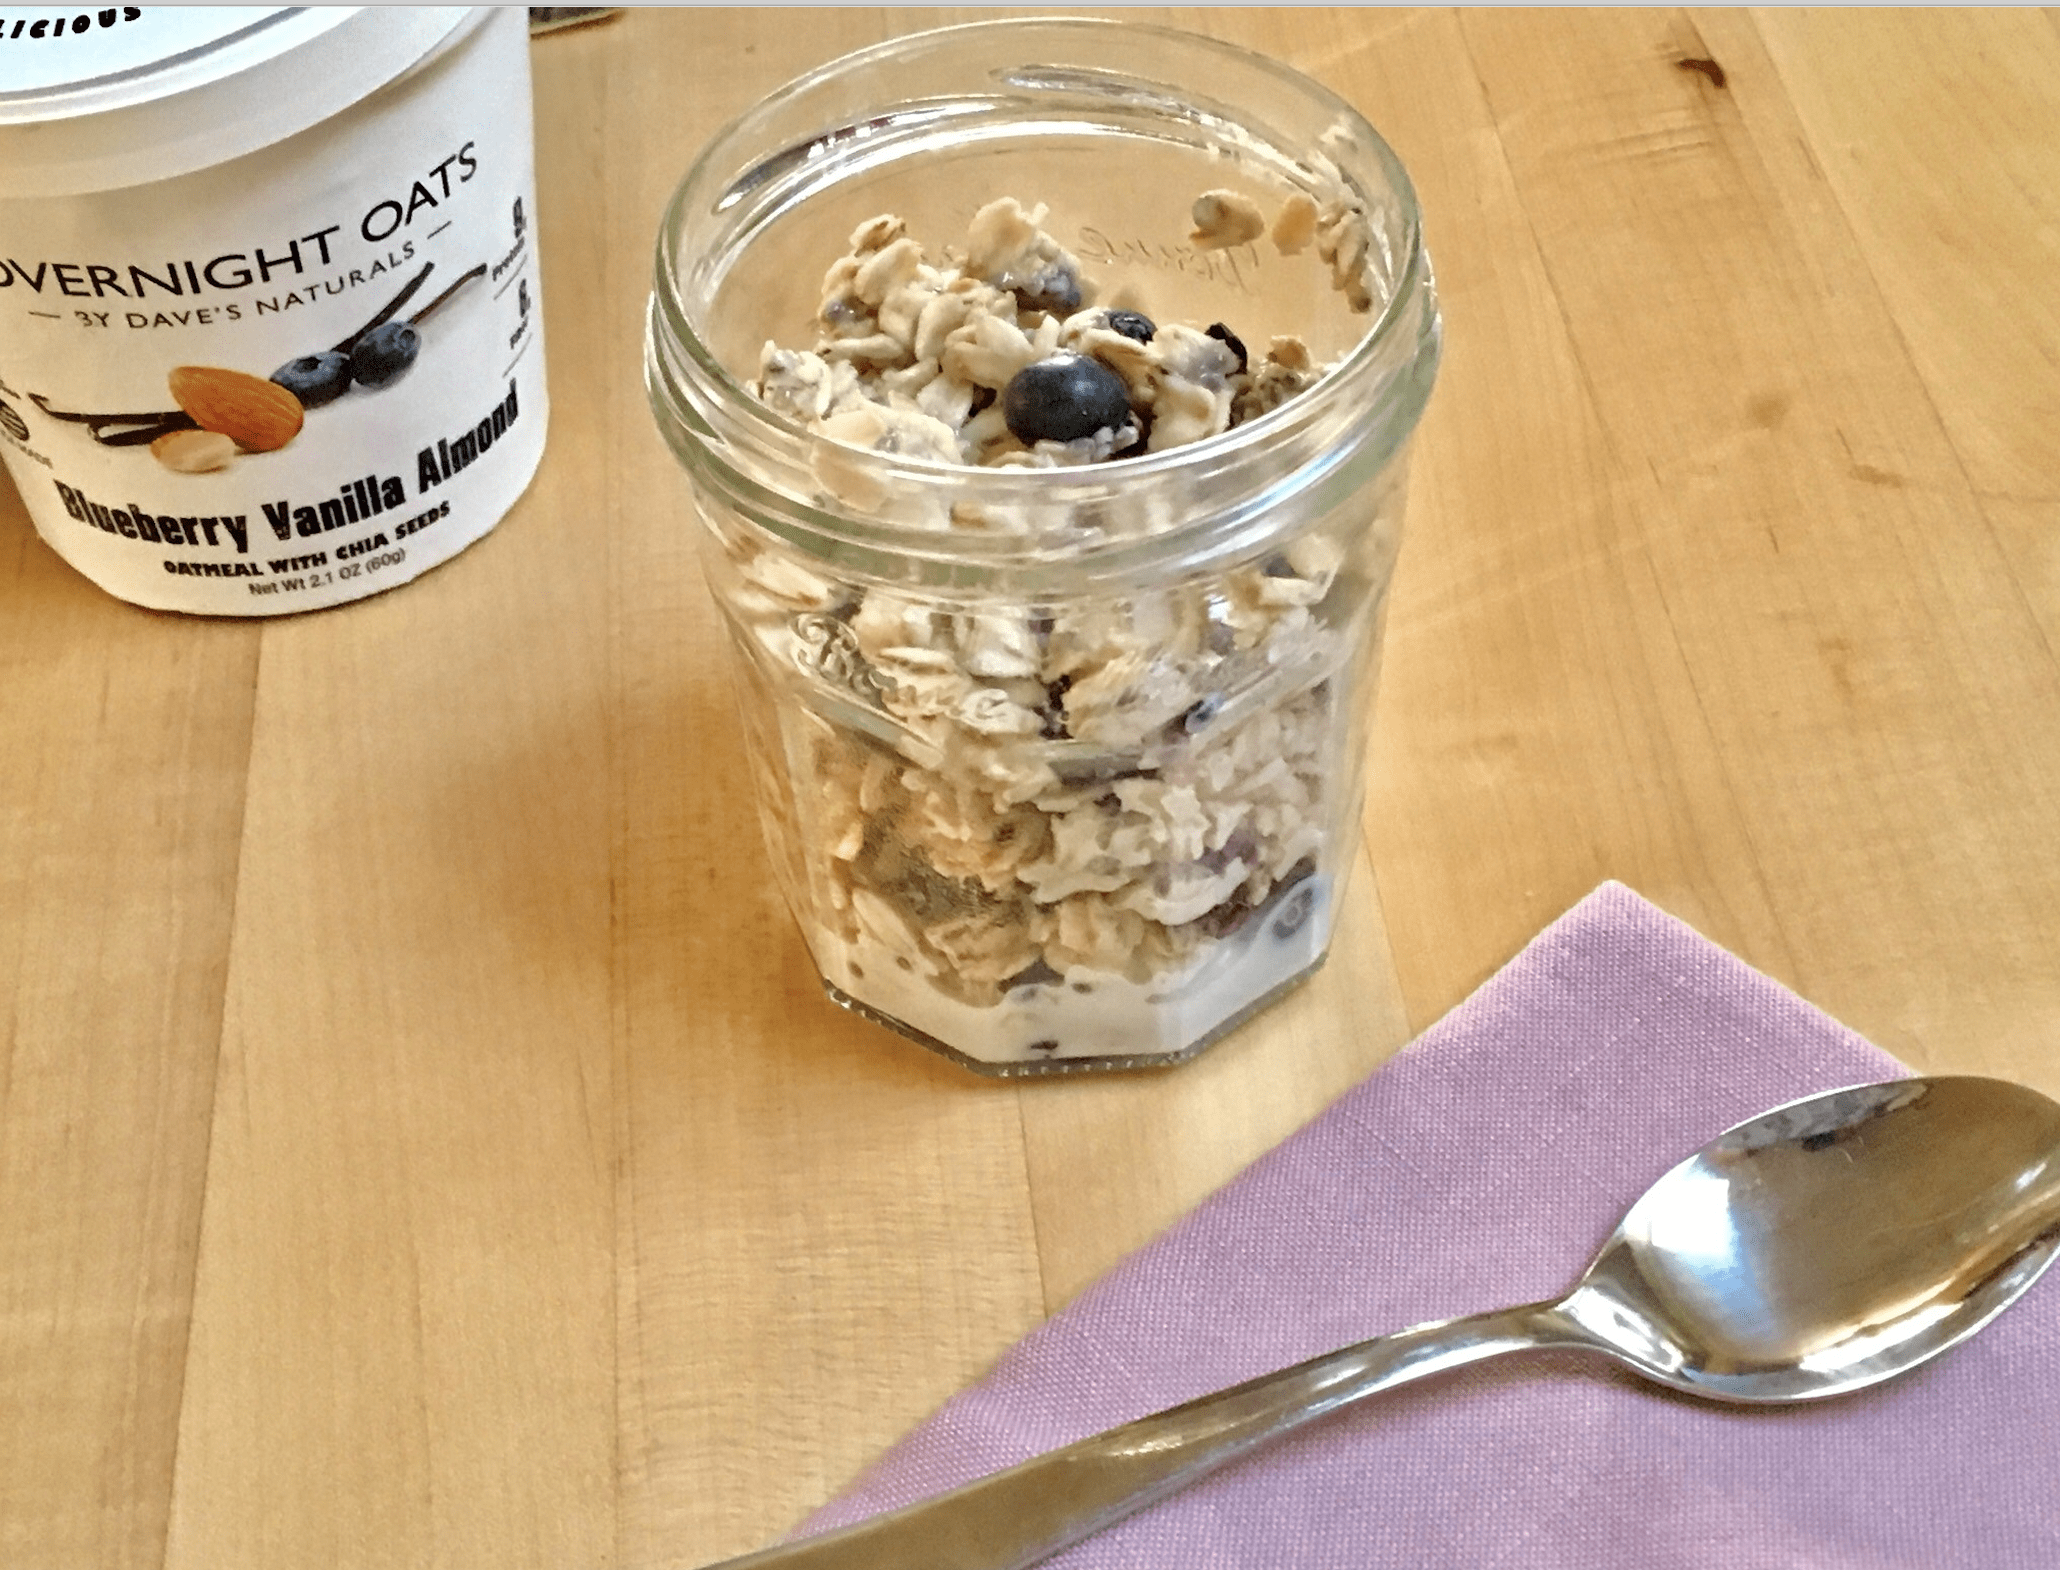 Blueberry Vanilla Almond overnight oats